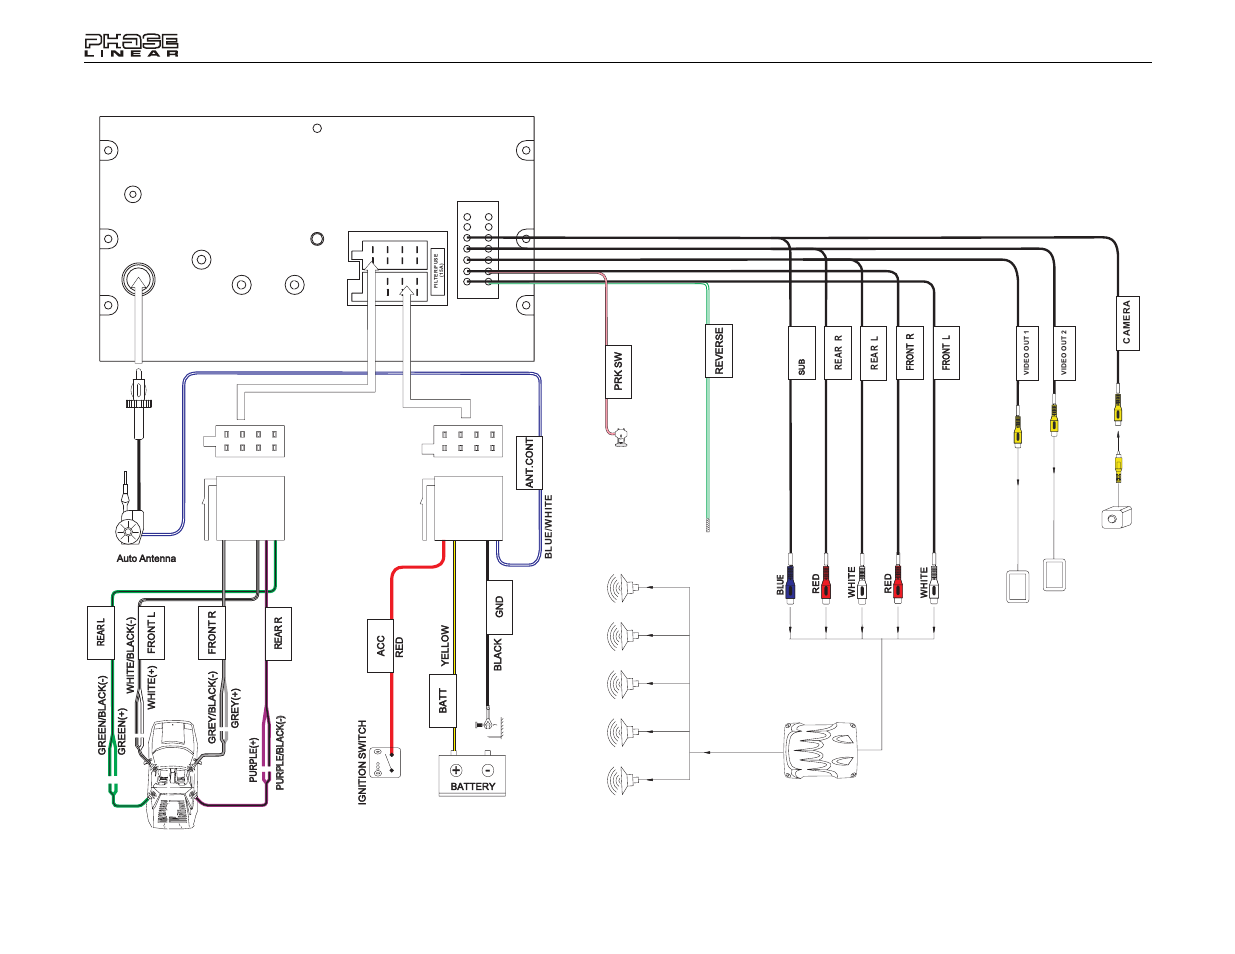 Jensen Uv8020 Wiring Diagram